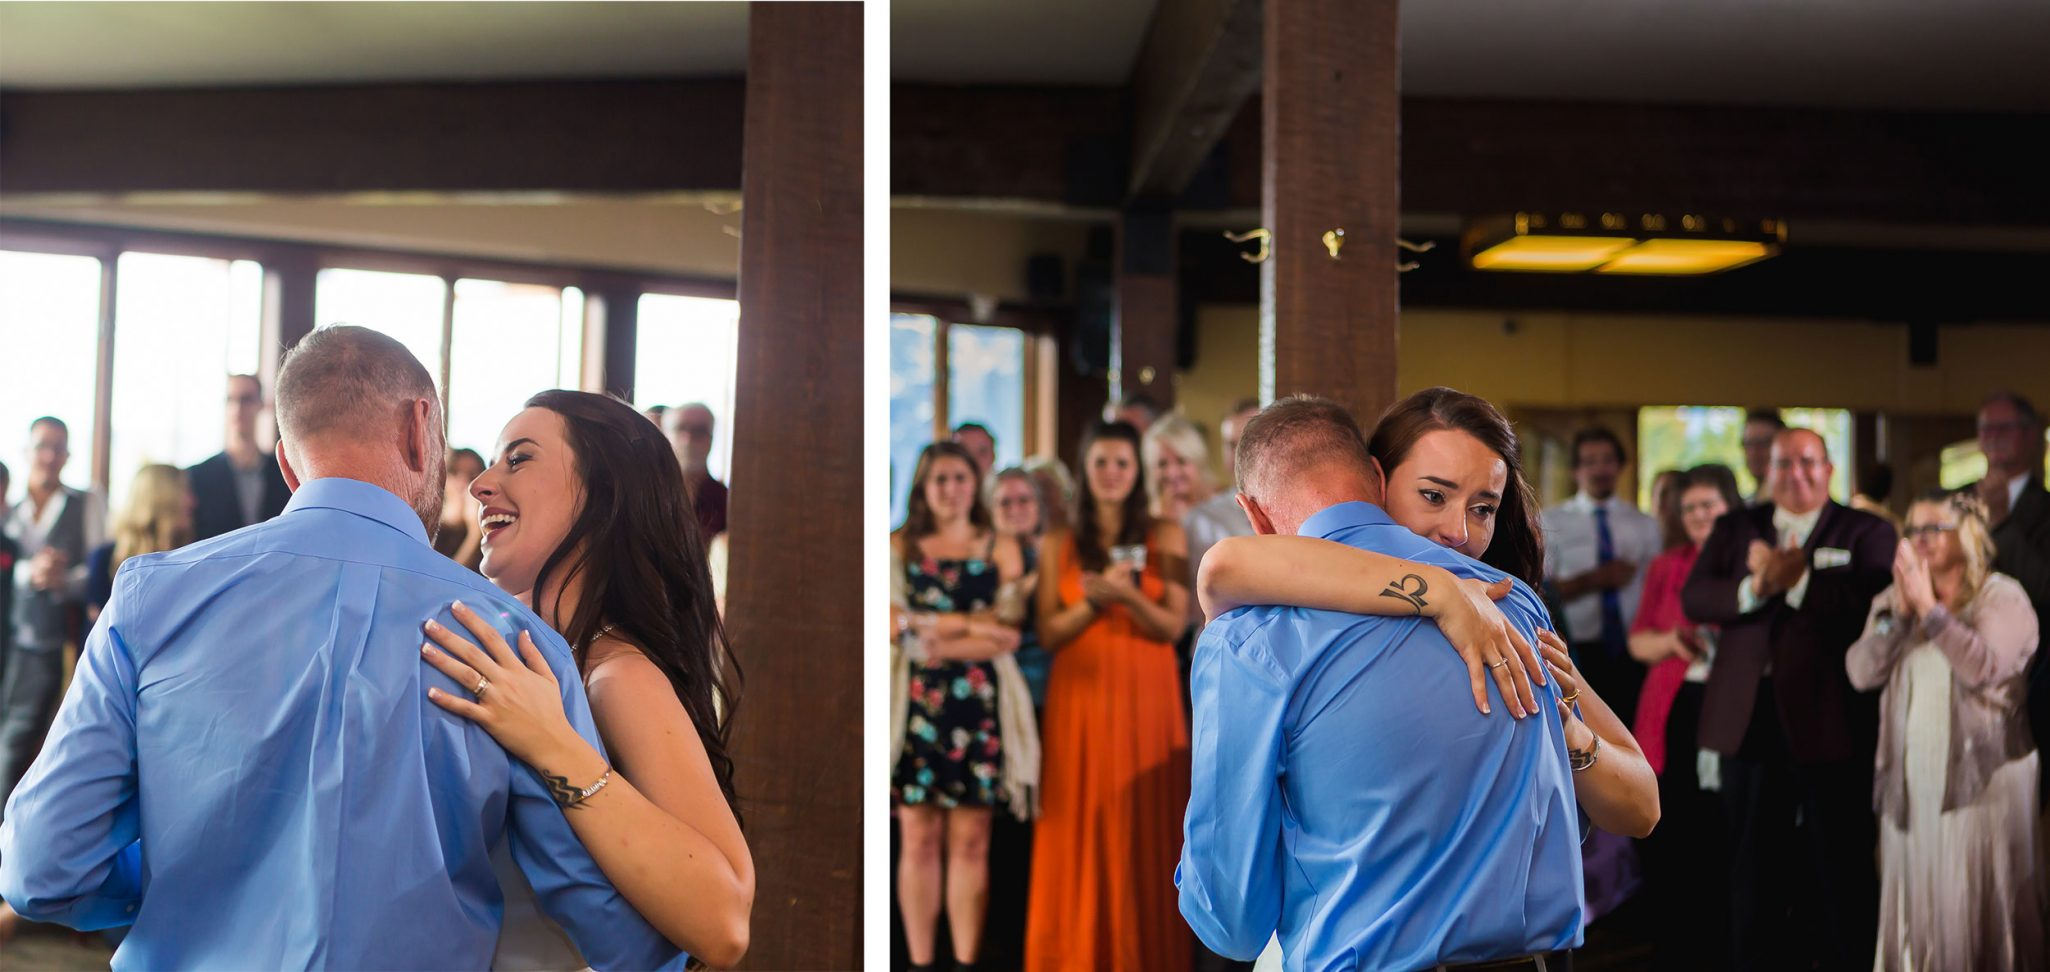 Dancing with dad | Durango Weddings Magazine